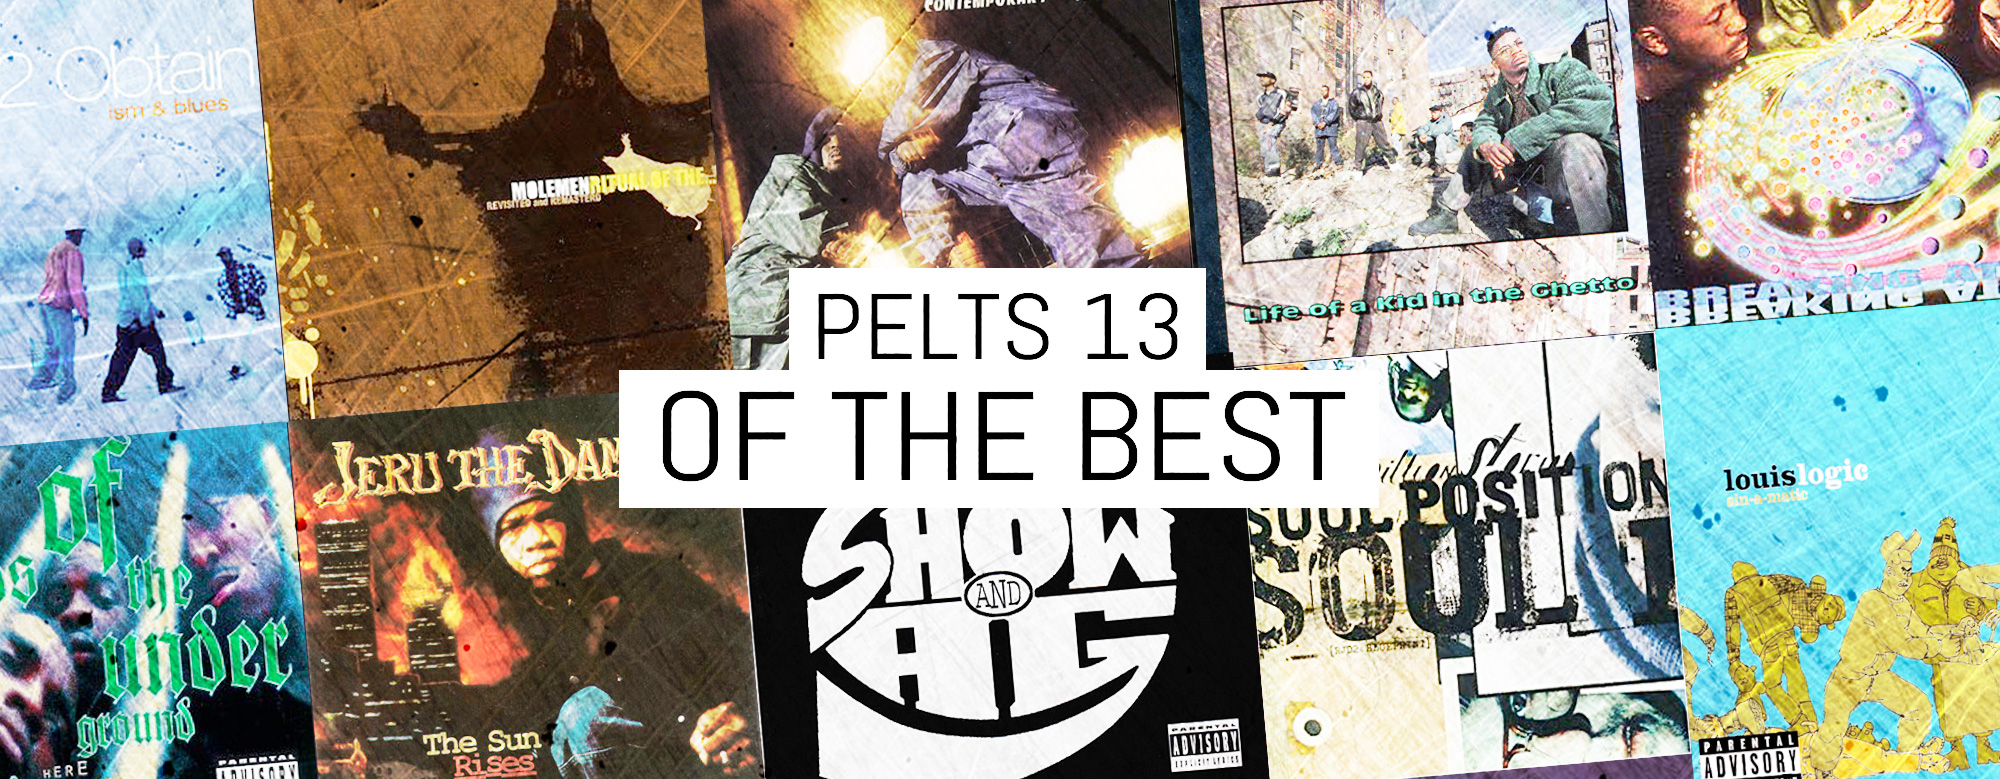 Pelt's thirteen of the best